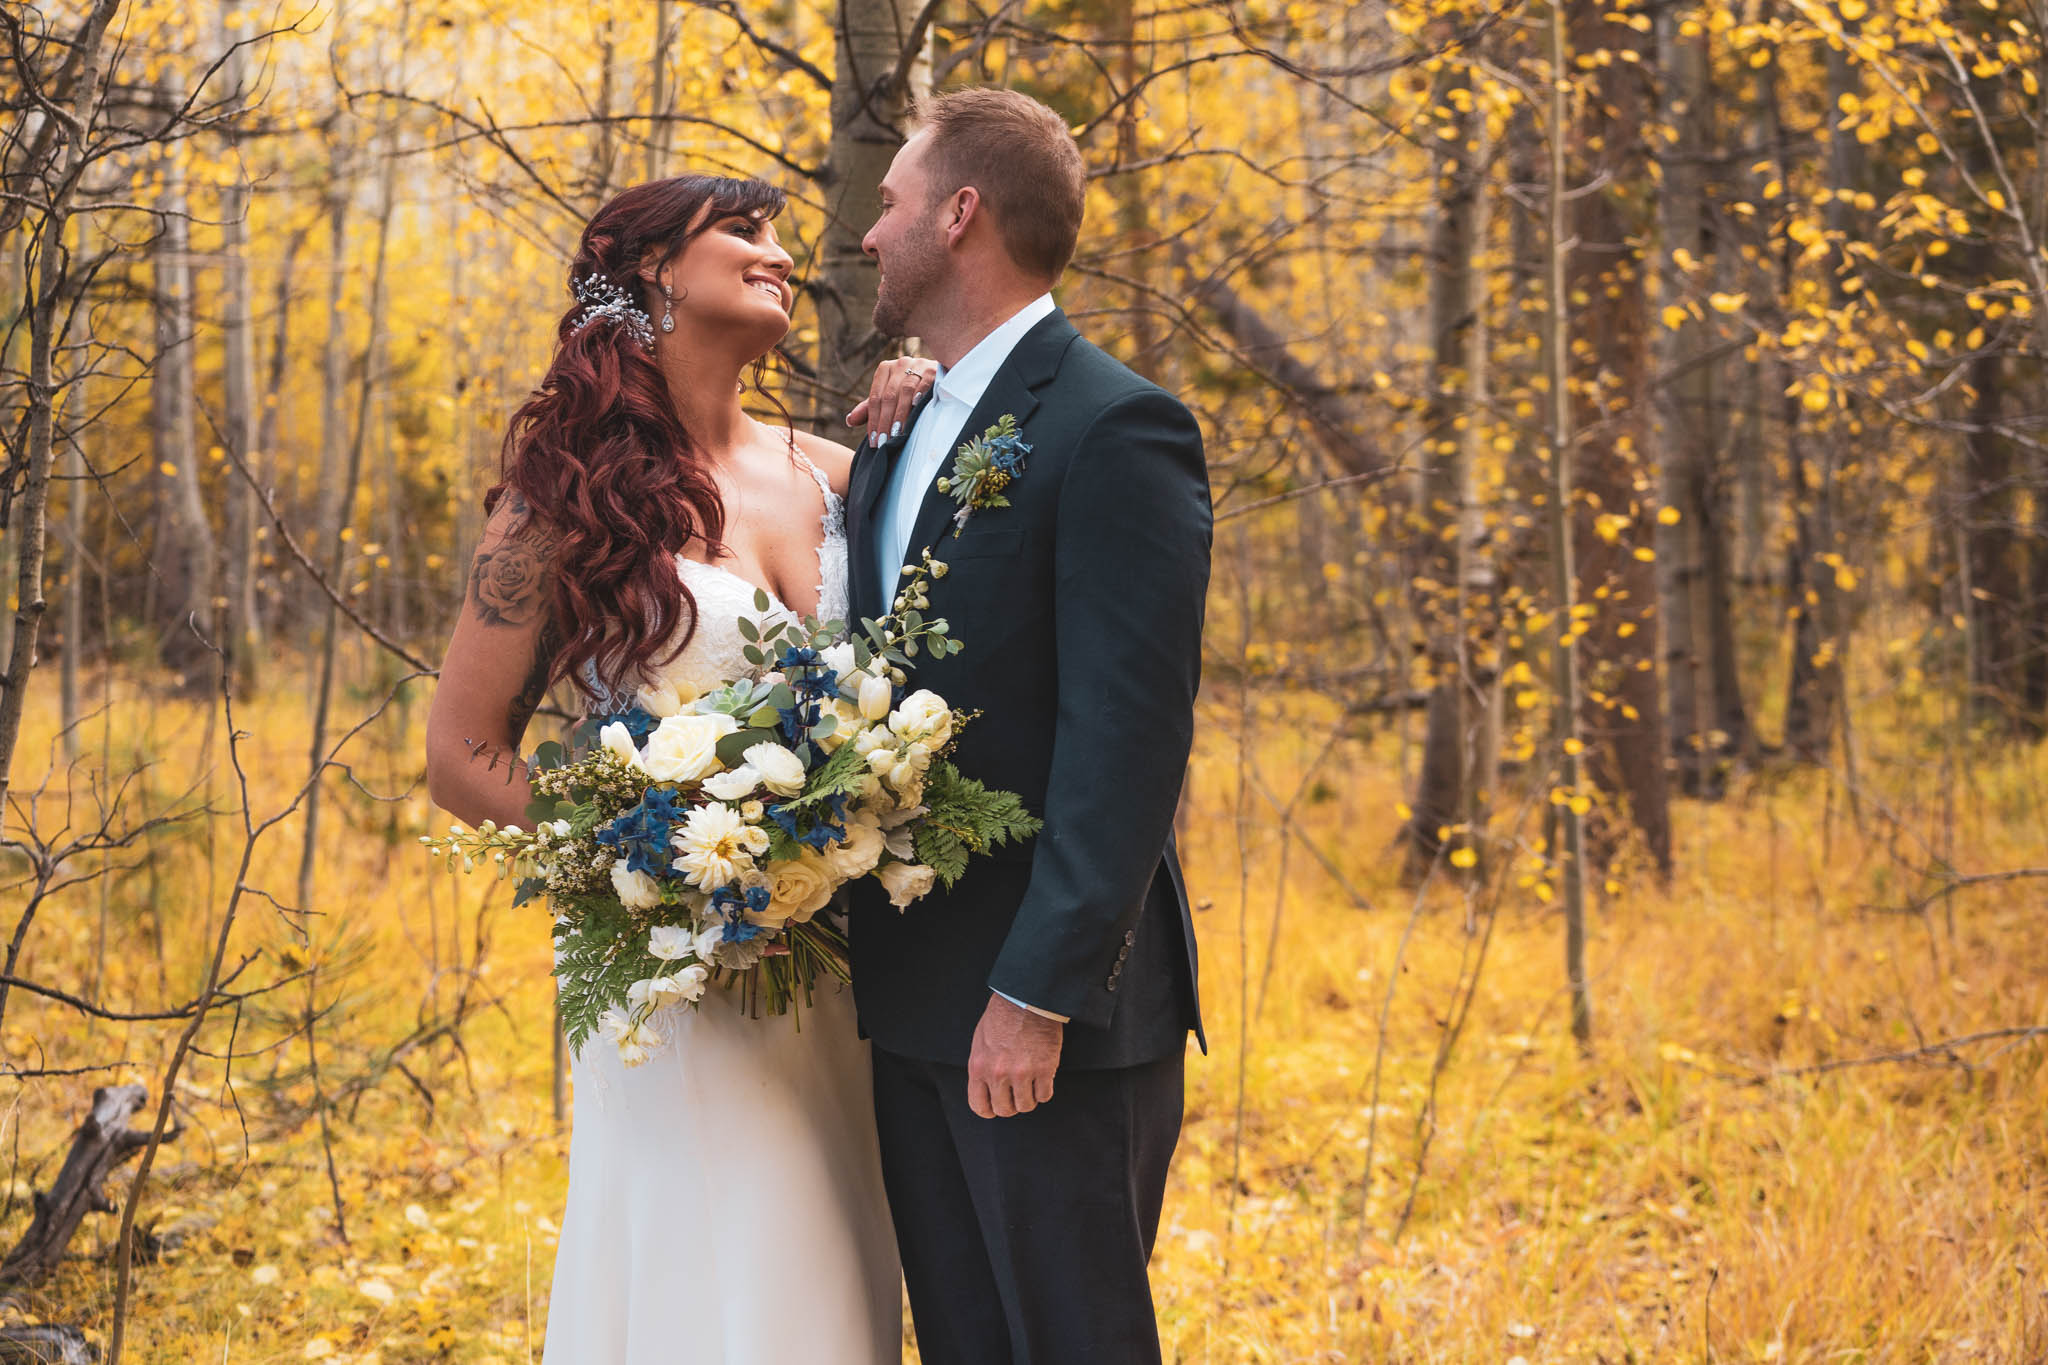 Bride and groom looking at each other surrounded by yellow aspen forest